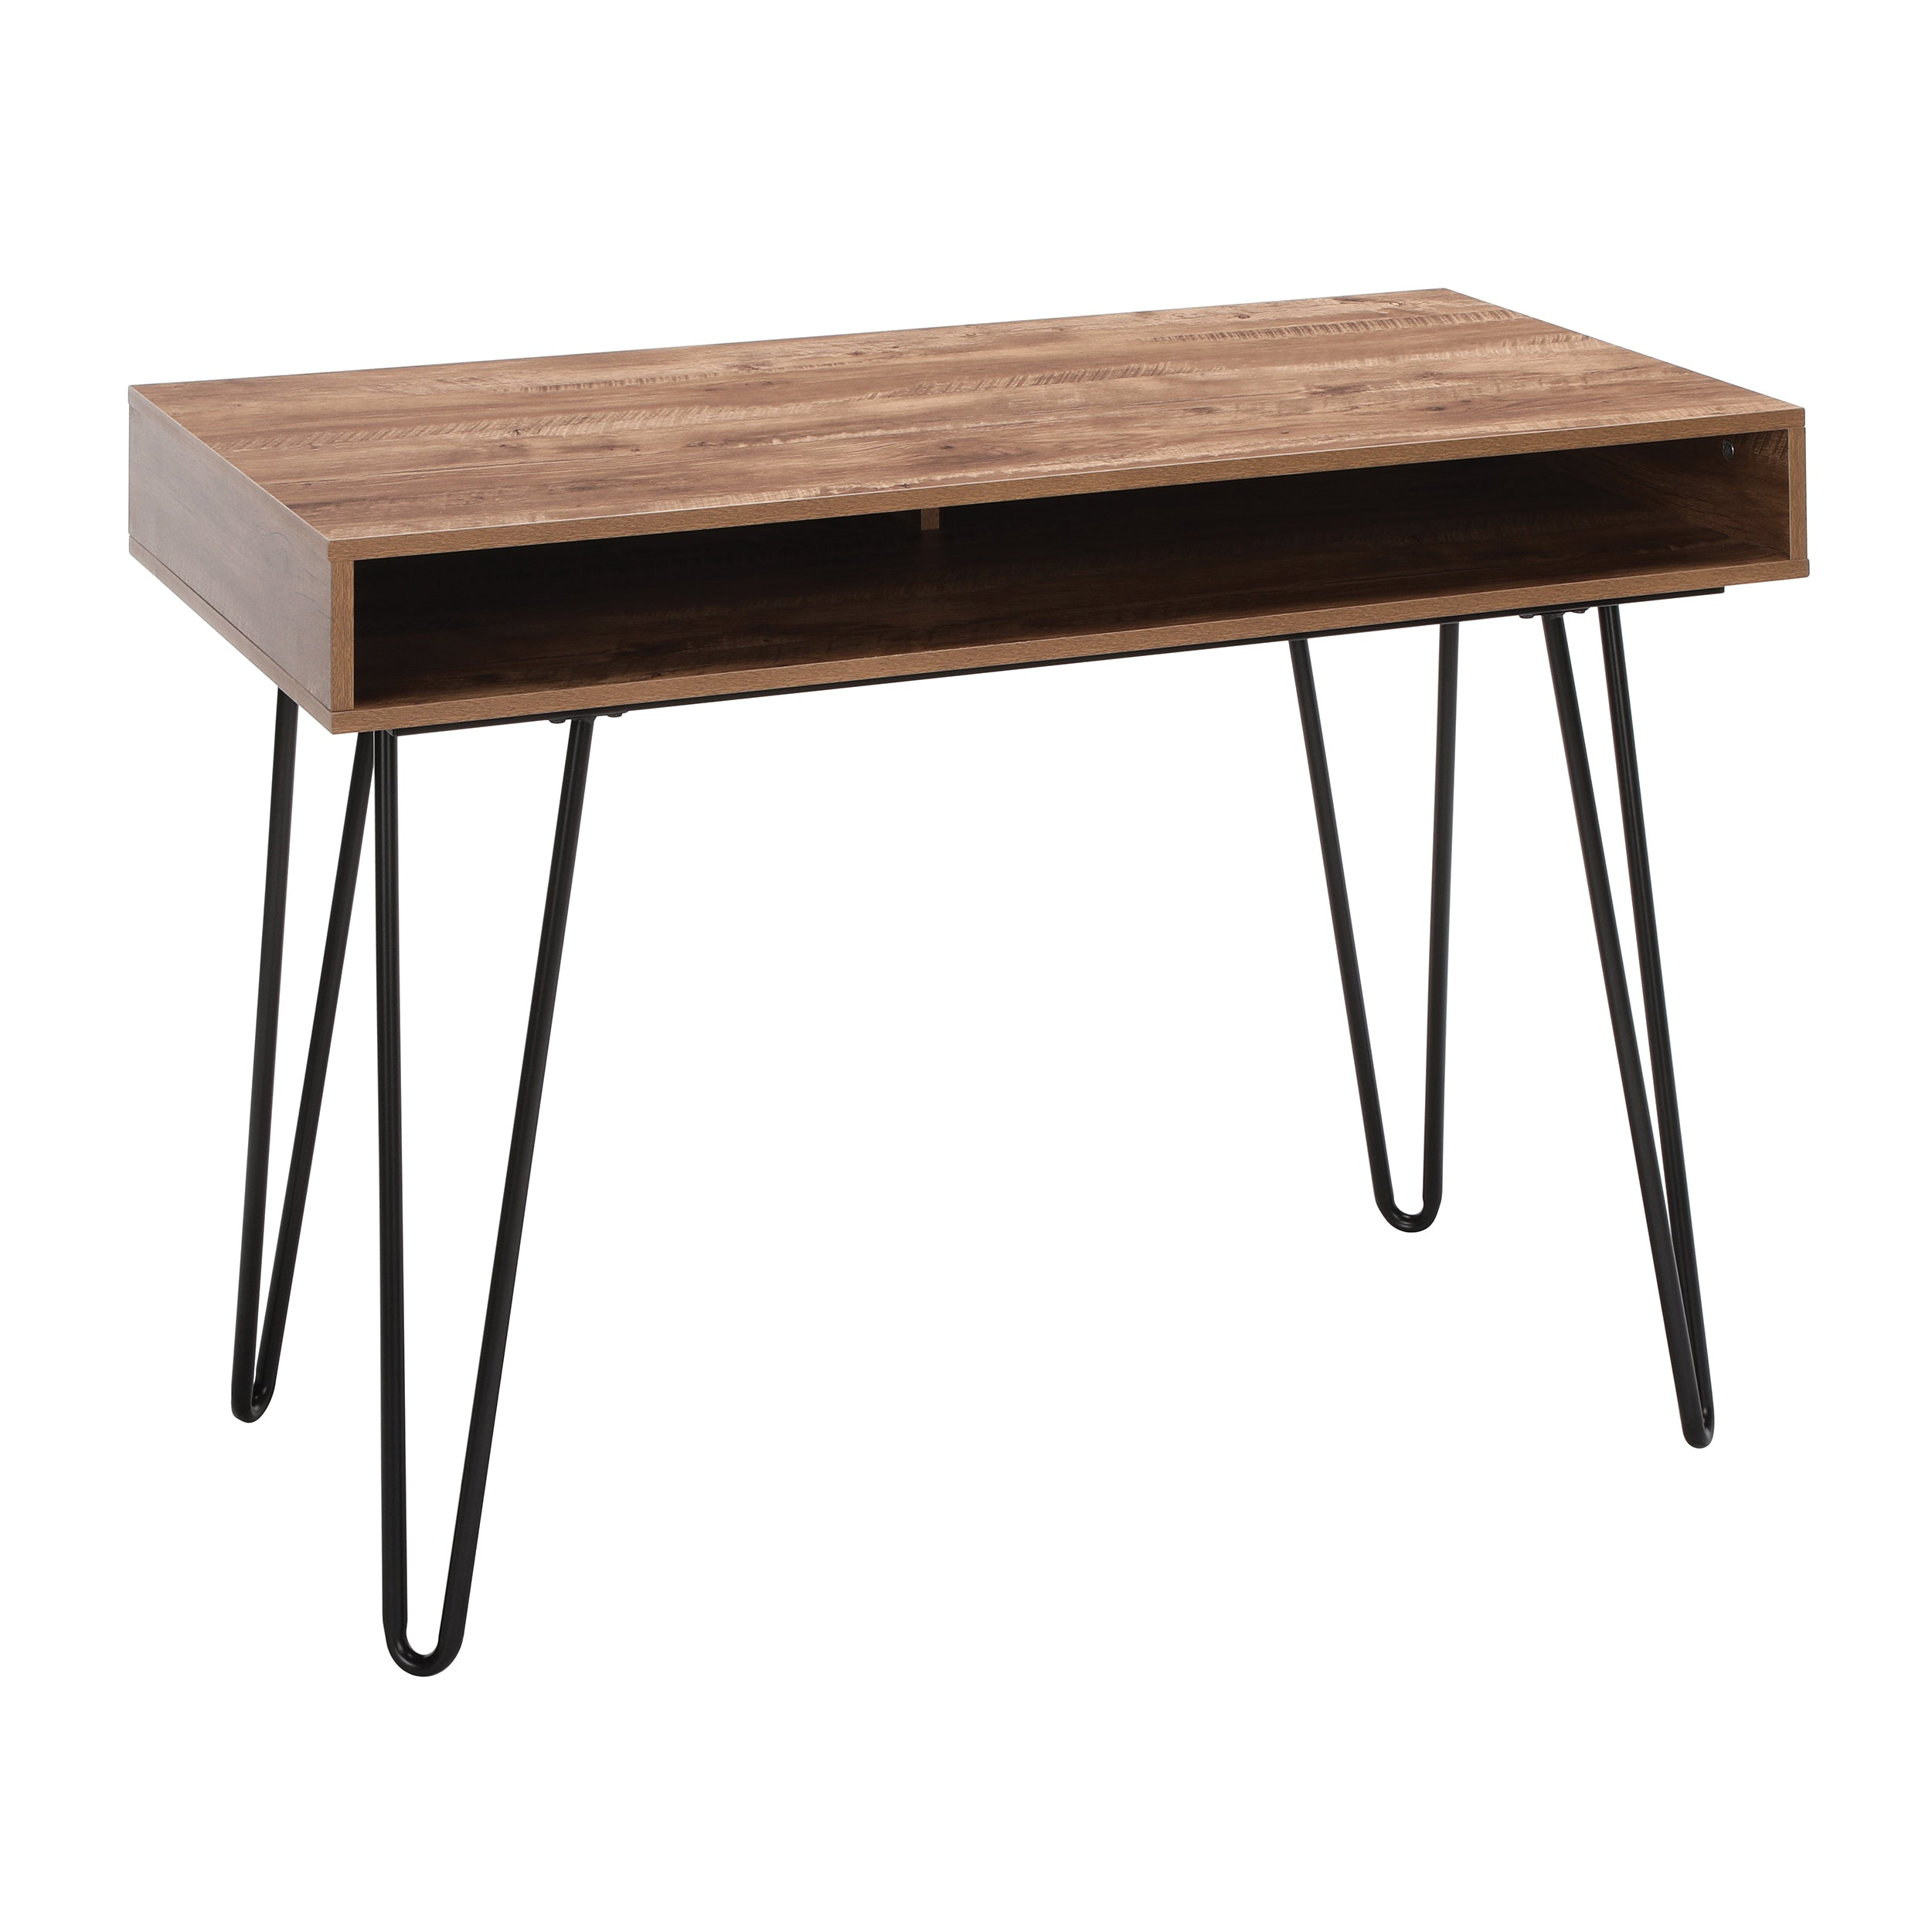 "44"" Home Retro Desk Writing Desk with Storage Hairpin Legs"